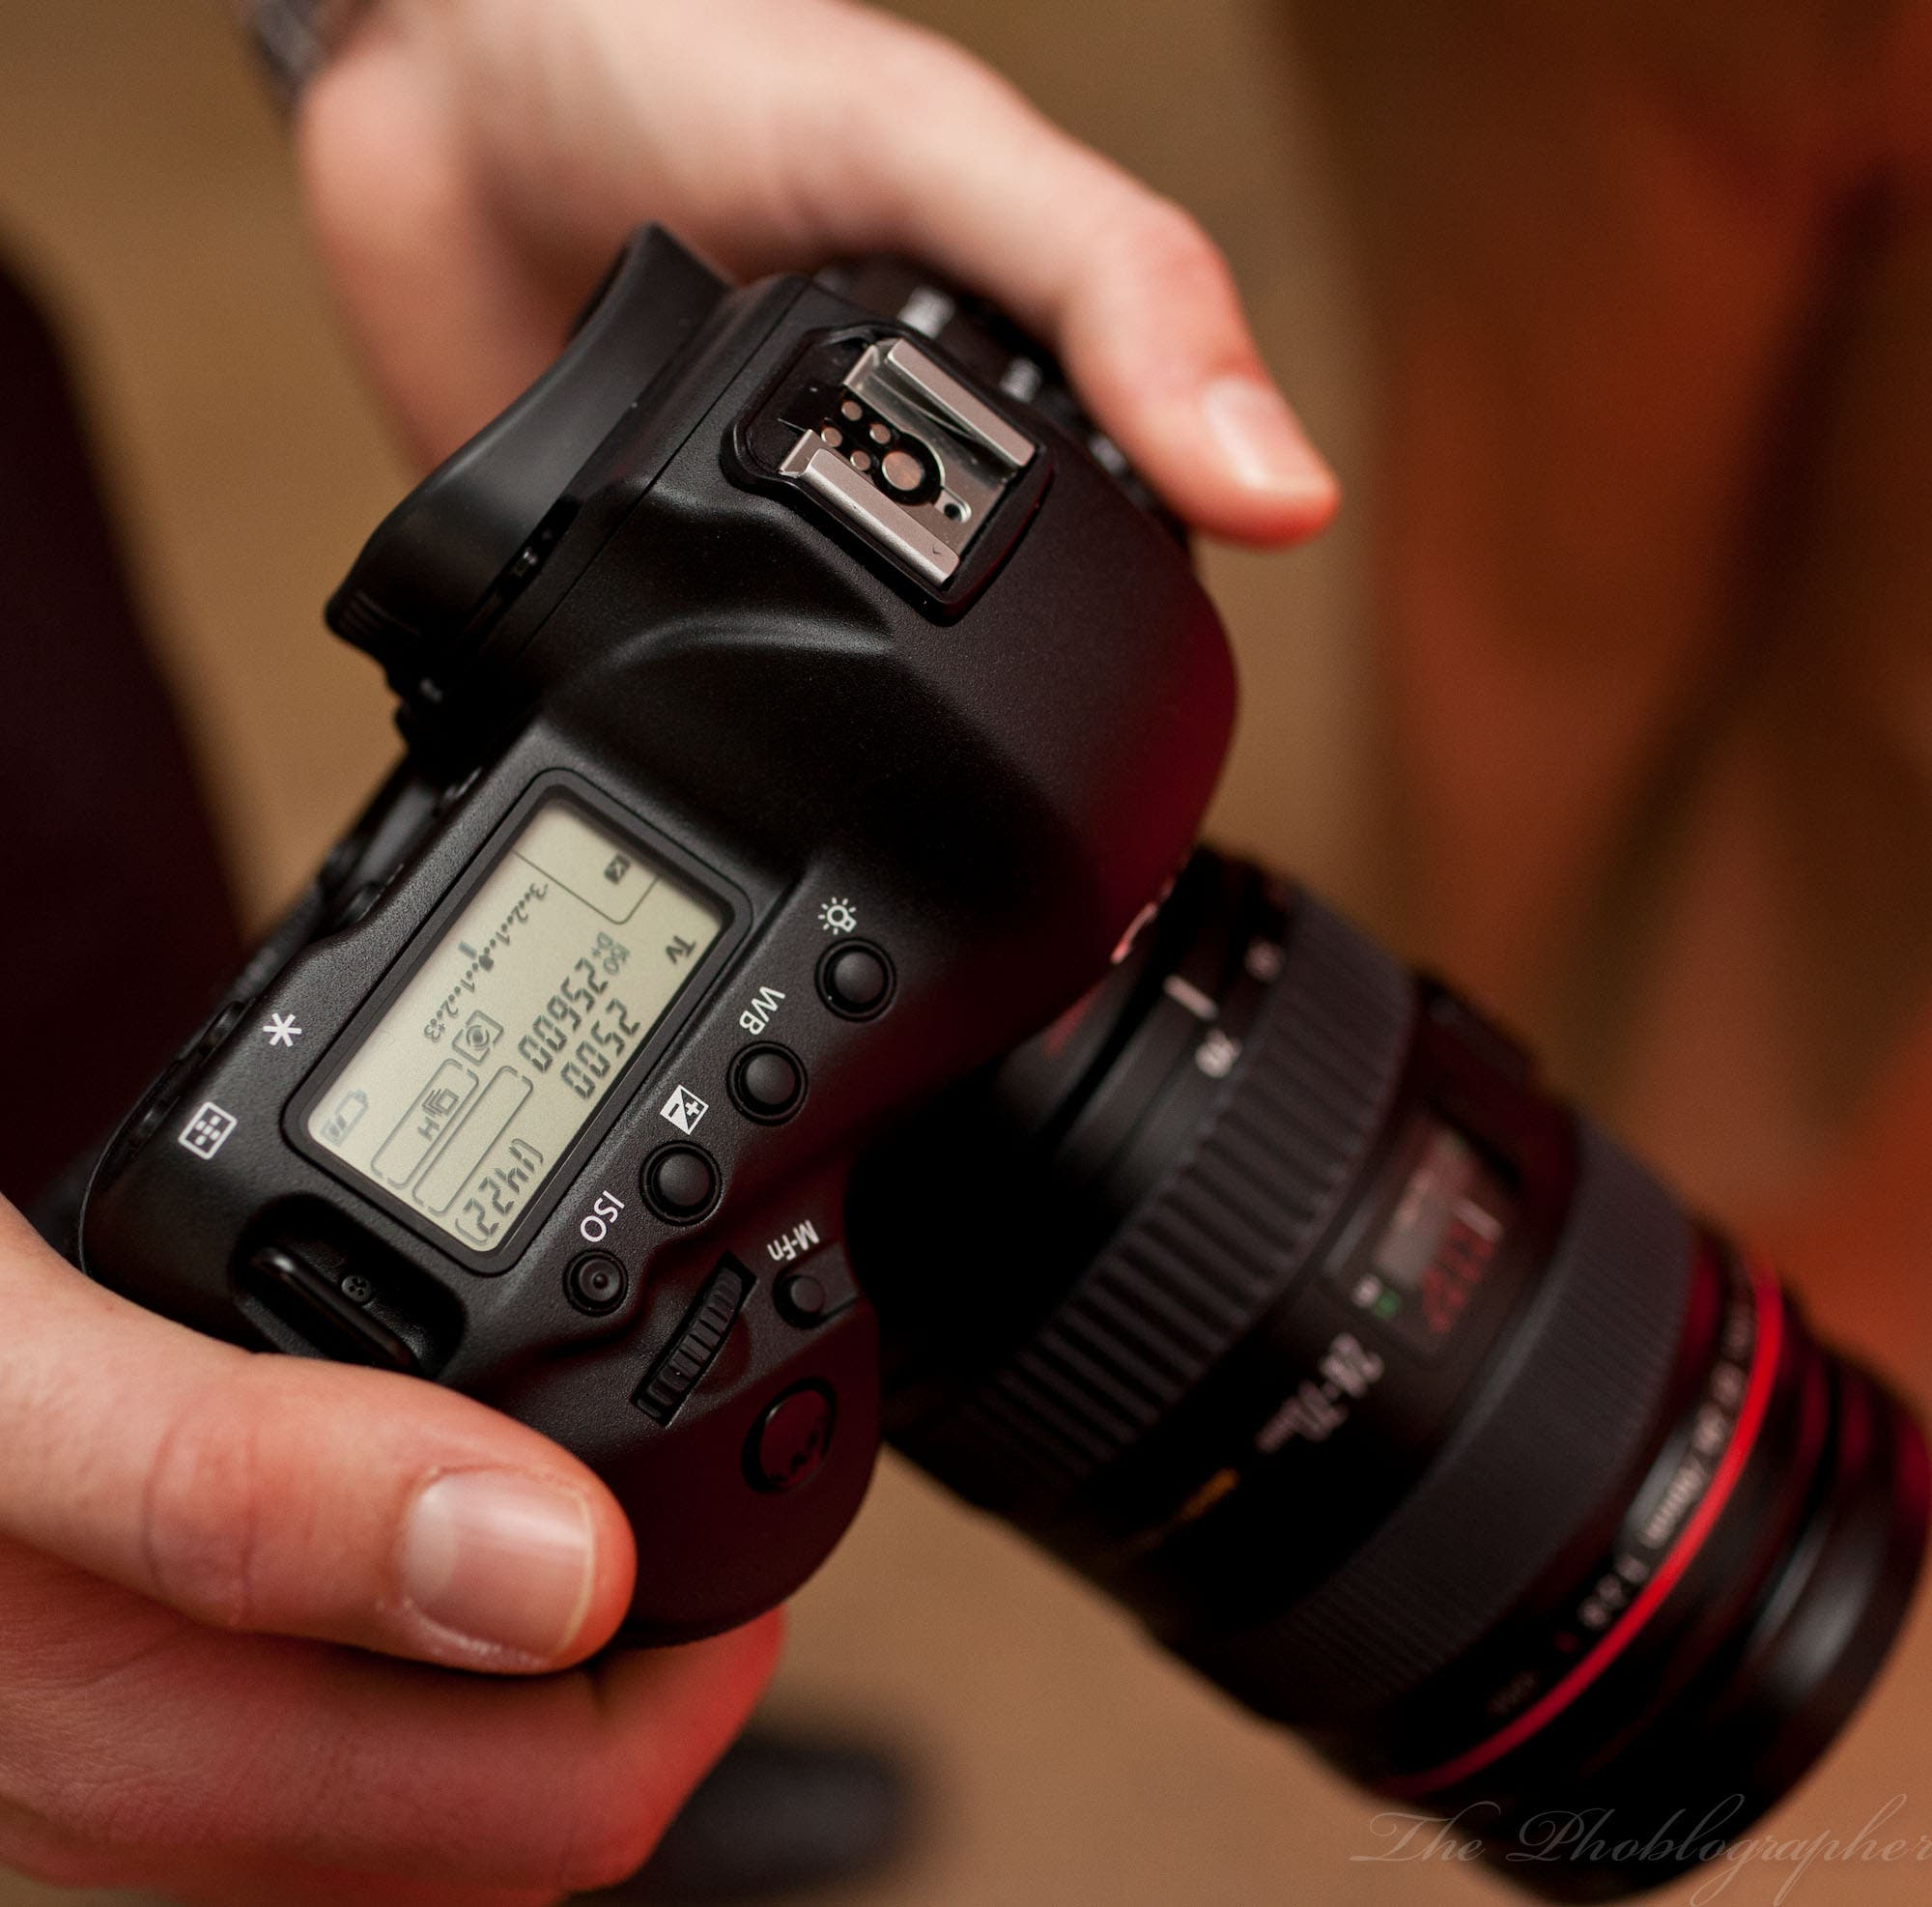 PocketWizard MiniTT1 and FlexTT5 Finally Work with the Canon 1D X. But Has History Repeated Itself?